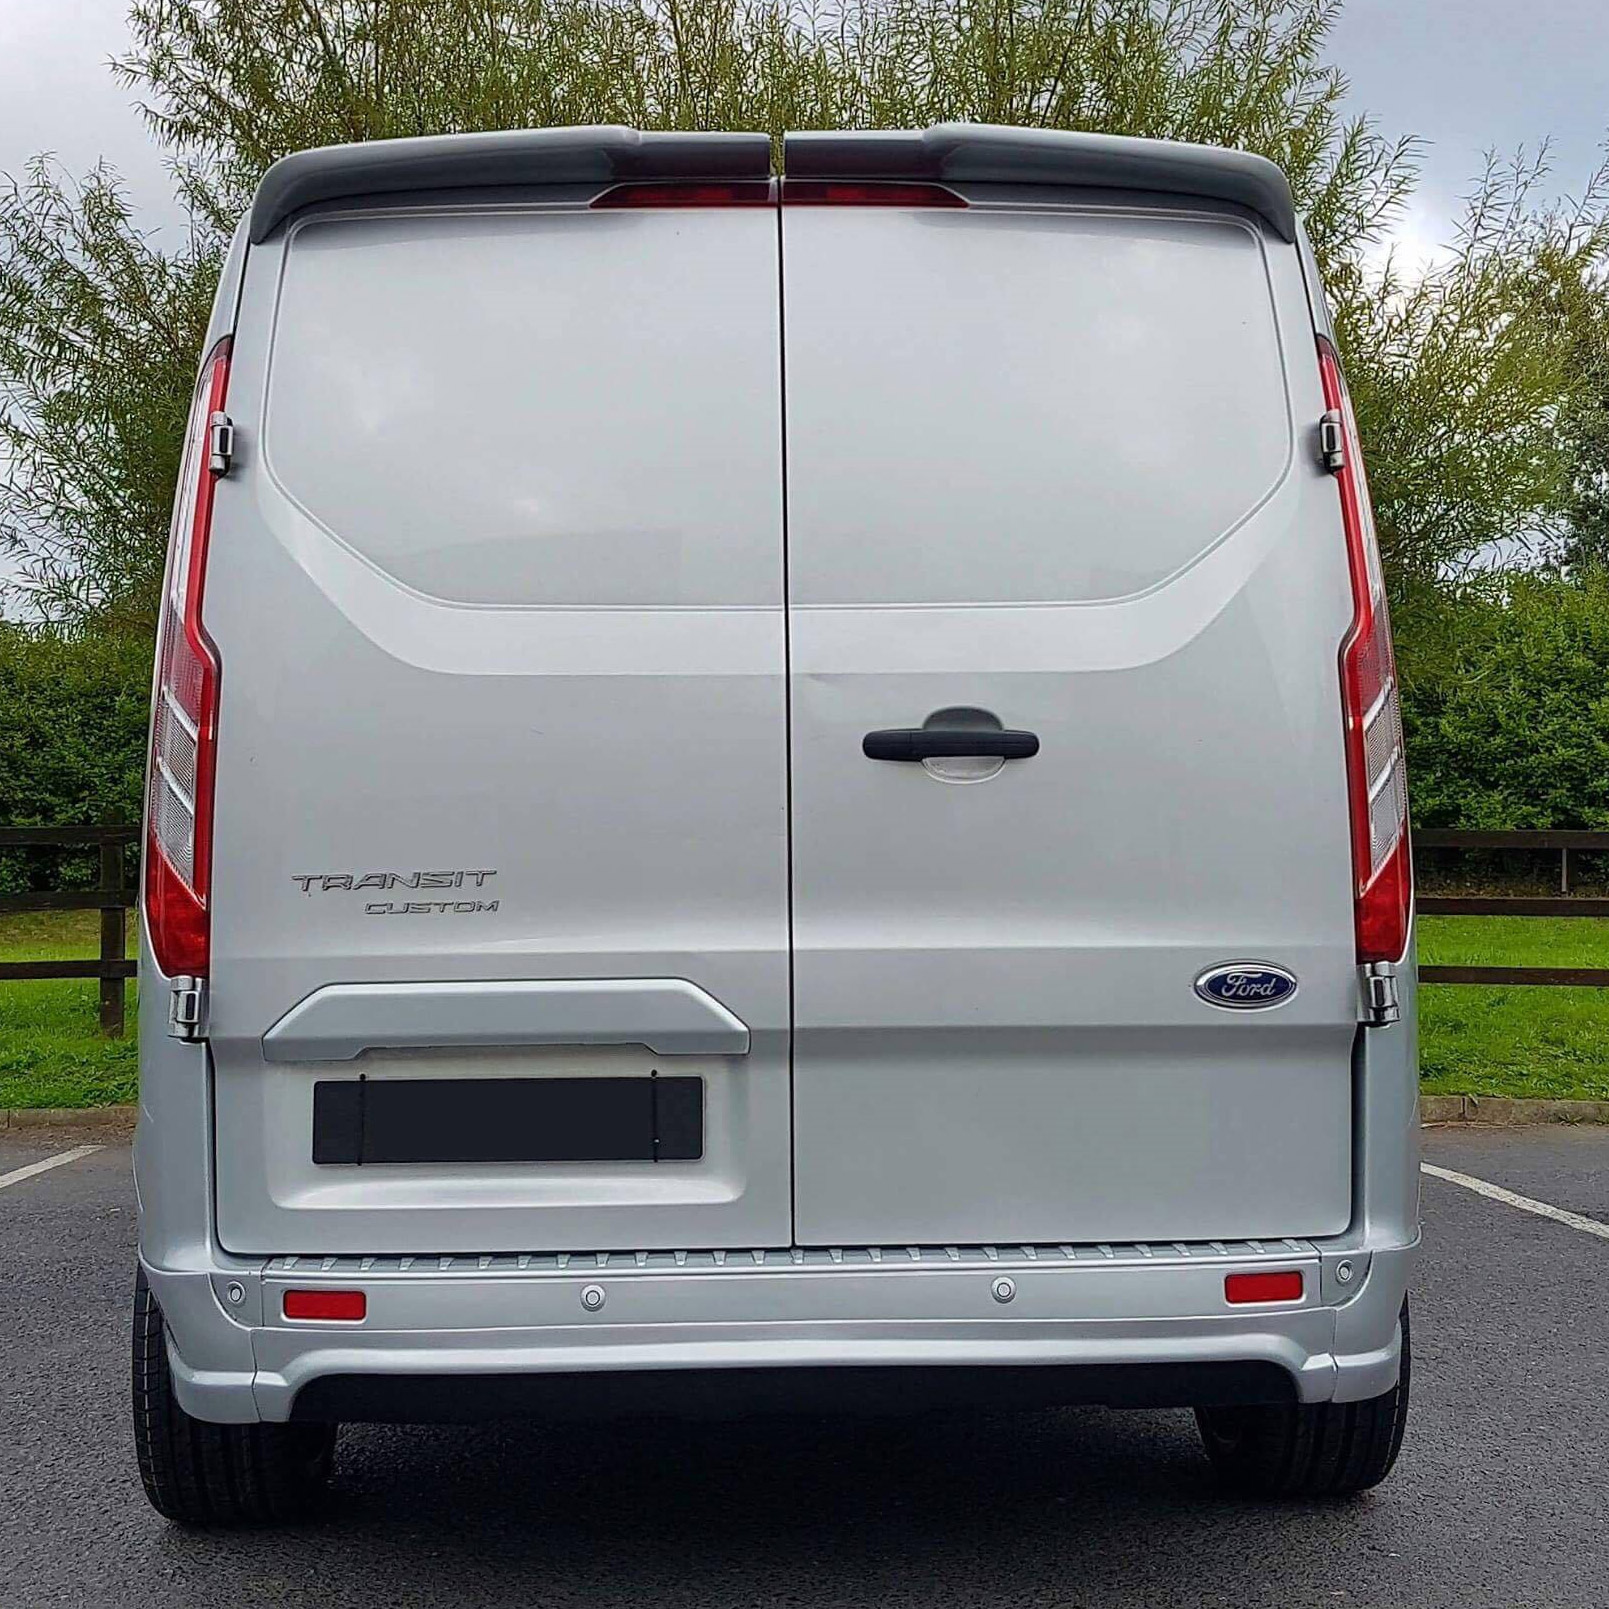 New Ford Transit Connect Vans For Sale: Transit Custom Barndoor Spoiler